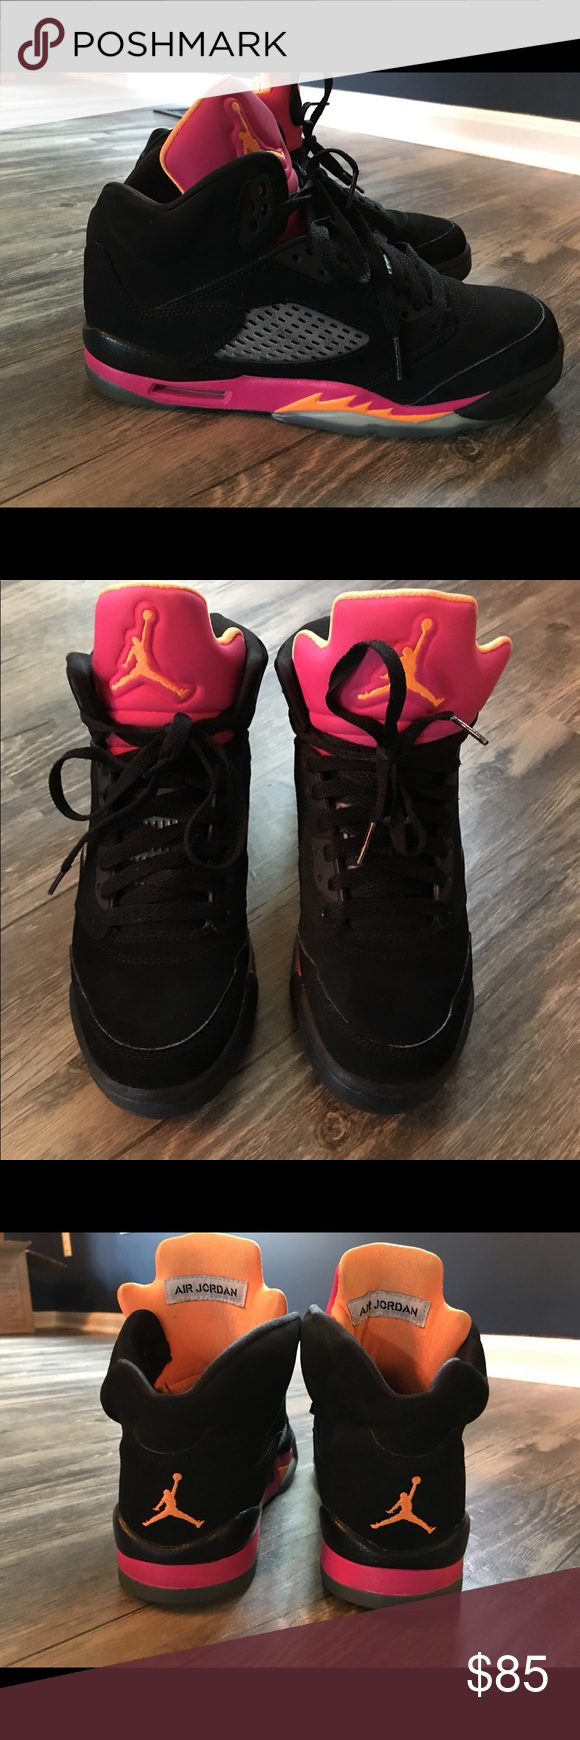 promo code 92e9c 50256 GIRLS AIR JORDAN 5 RETRO (GS)